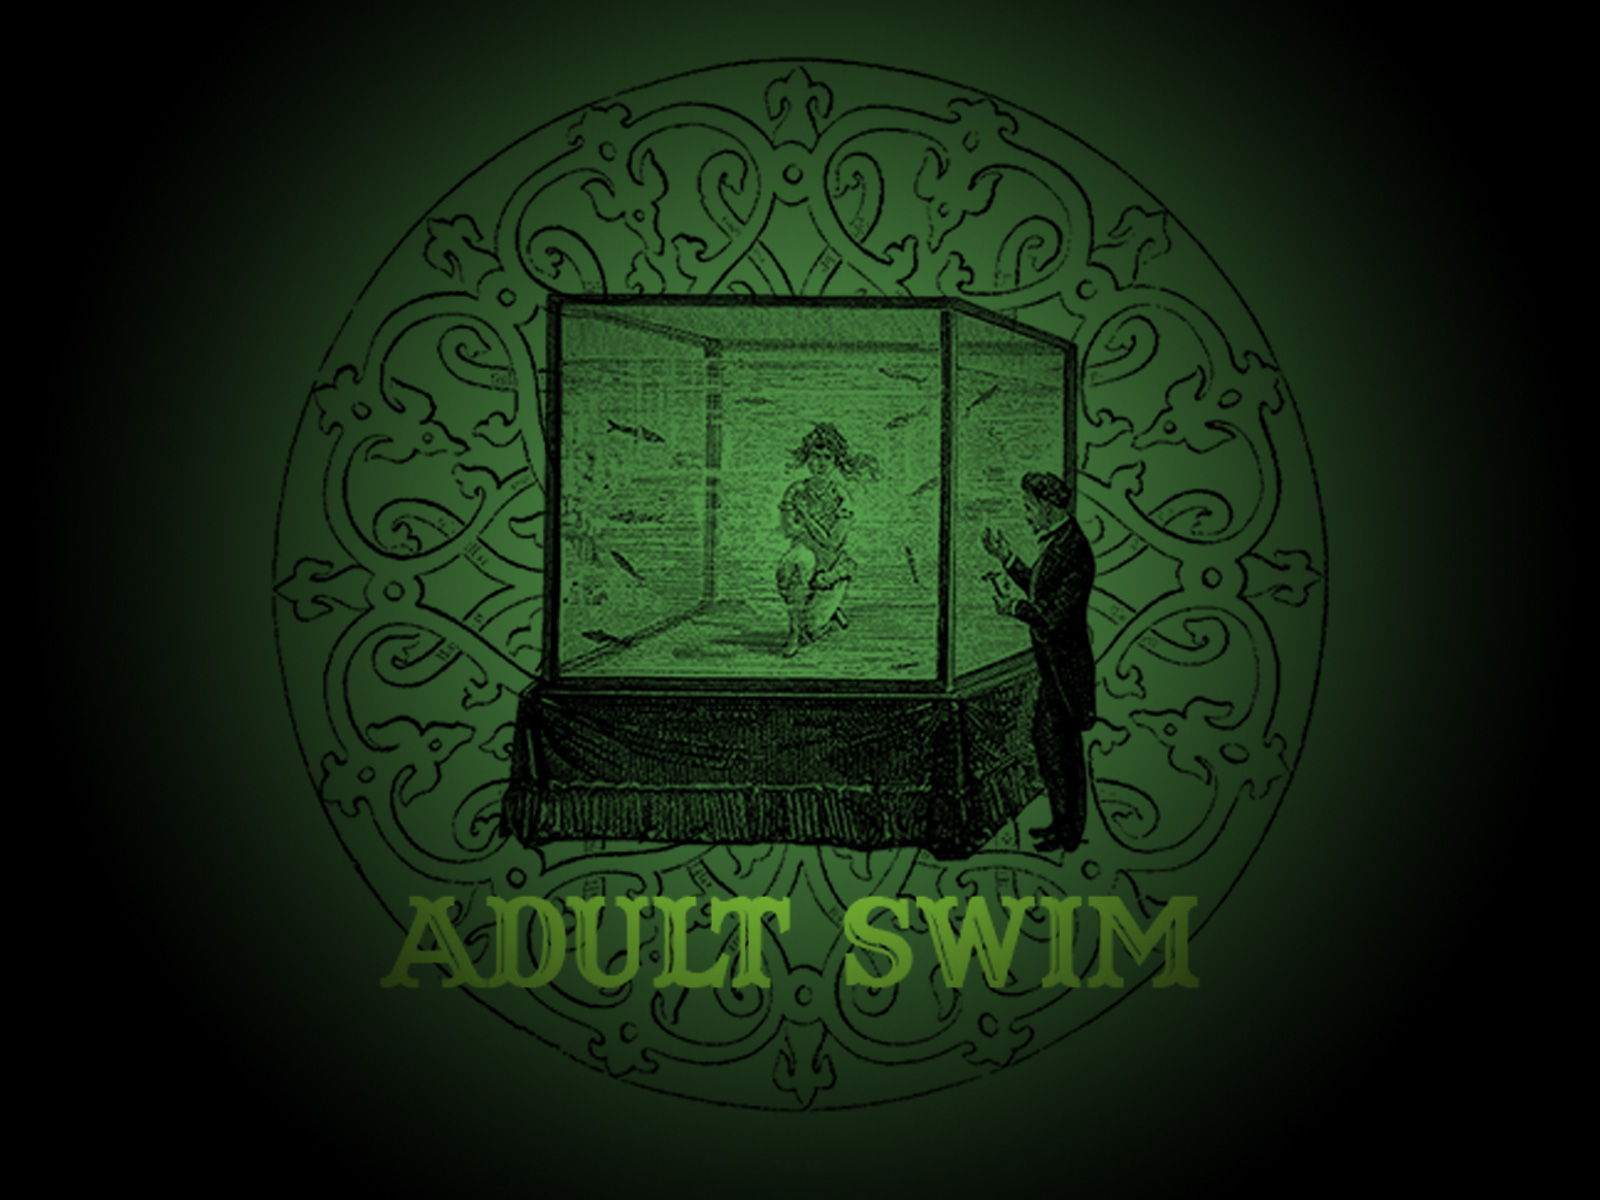 logo wallpaper swim adult